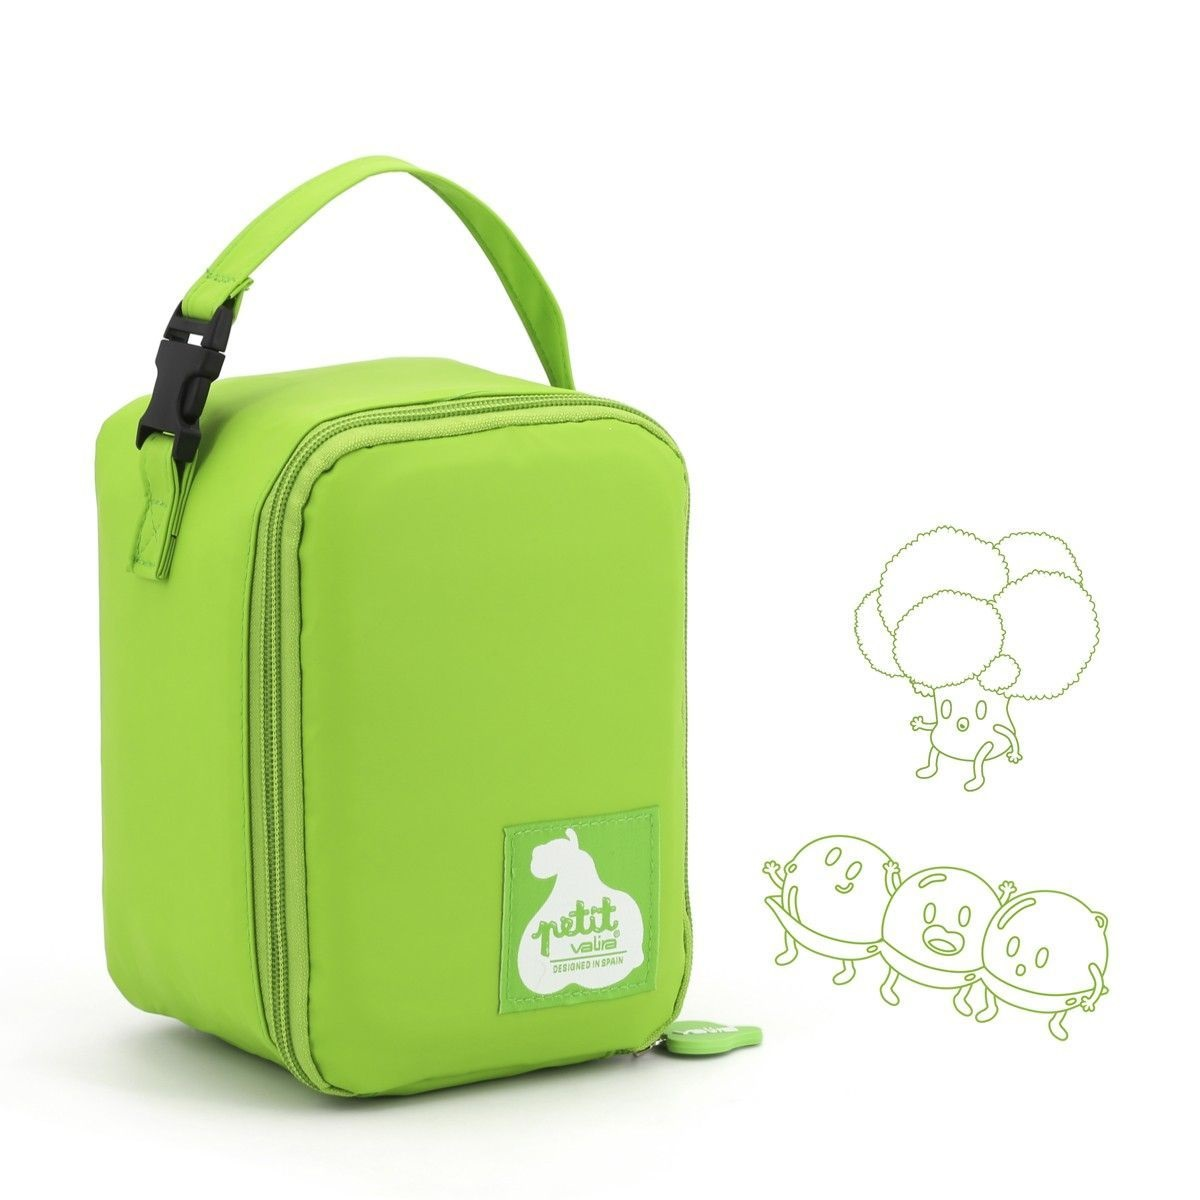 Онлайн каталог PROMENU: Термо-сумка Valira LUNCH BAG PETIT, зеленая                                   6034/51